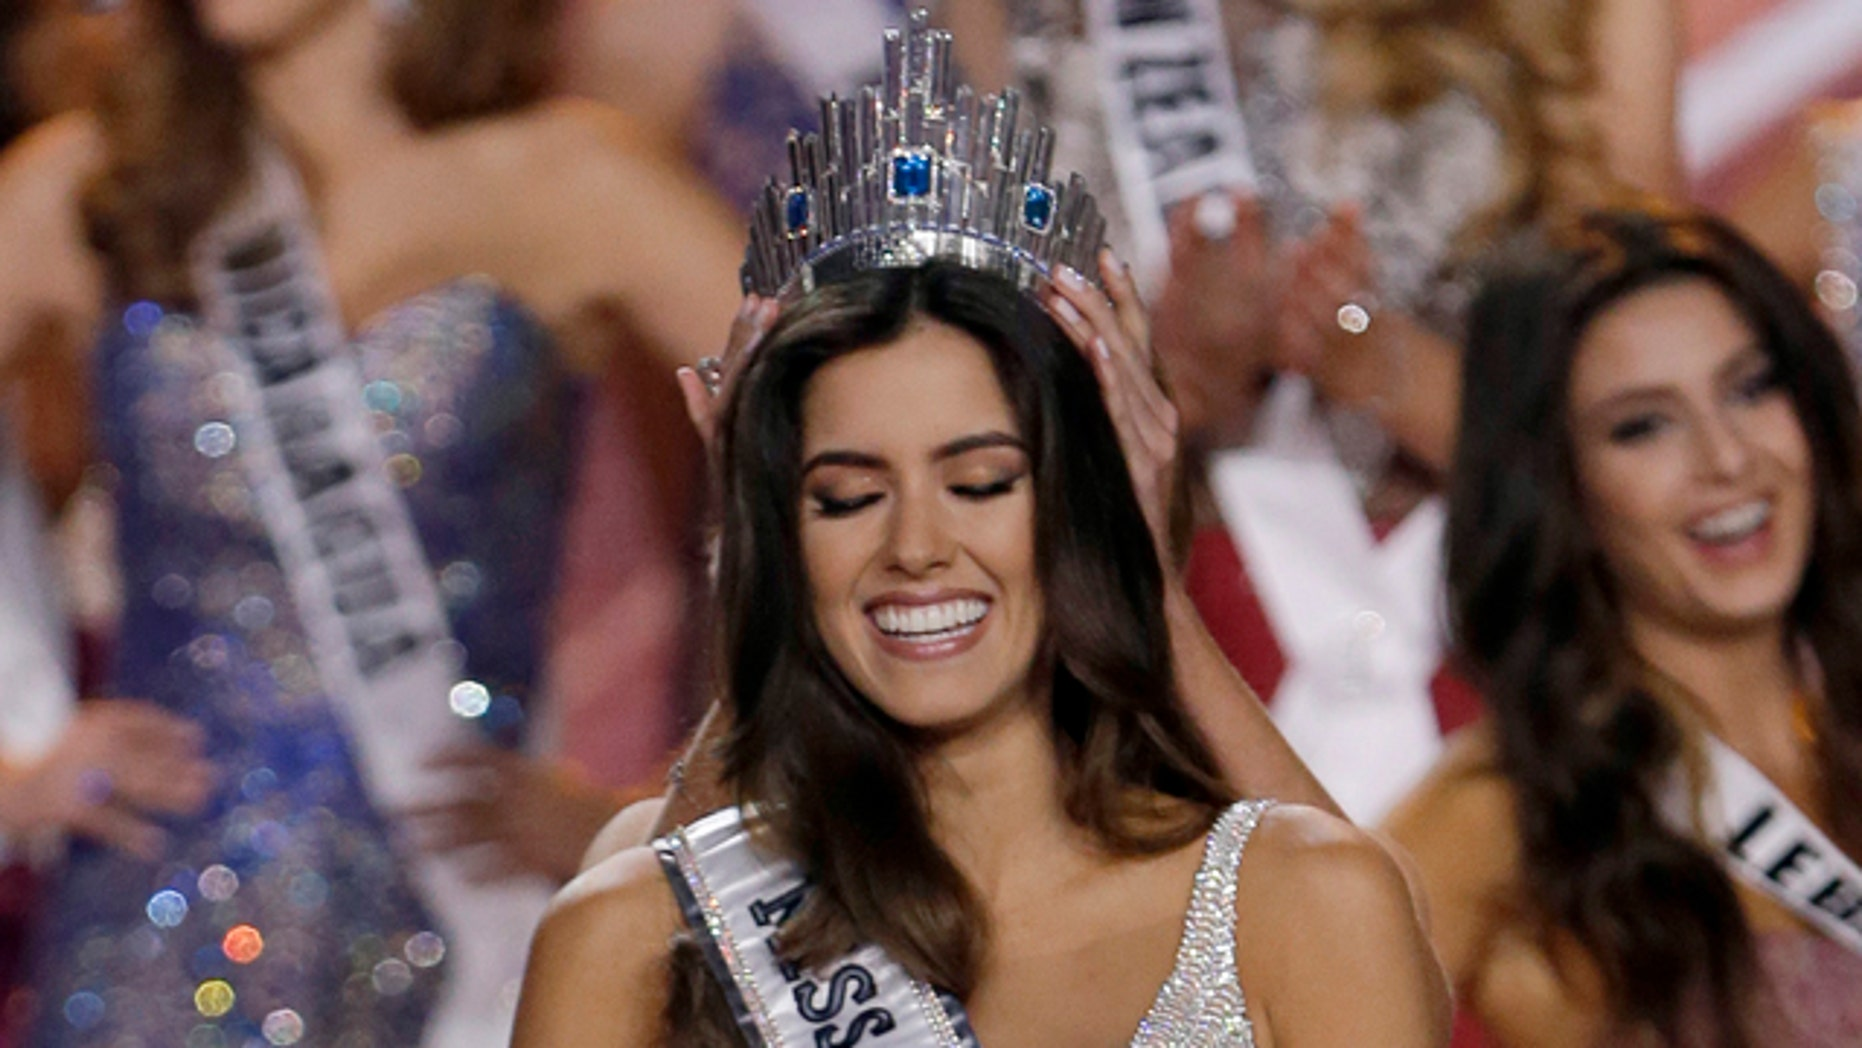 Jan. 25, 2015: Miss Colombia Paulina Vega smiles as the the crown is placed on her head as she becomes Miss Universe during the Miss Universe pageant in Miami. (AP Photo/Wilfredo Lee)